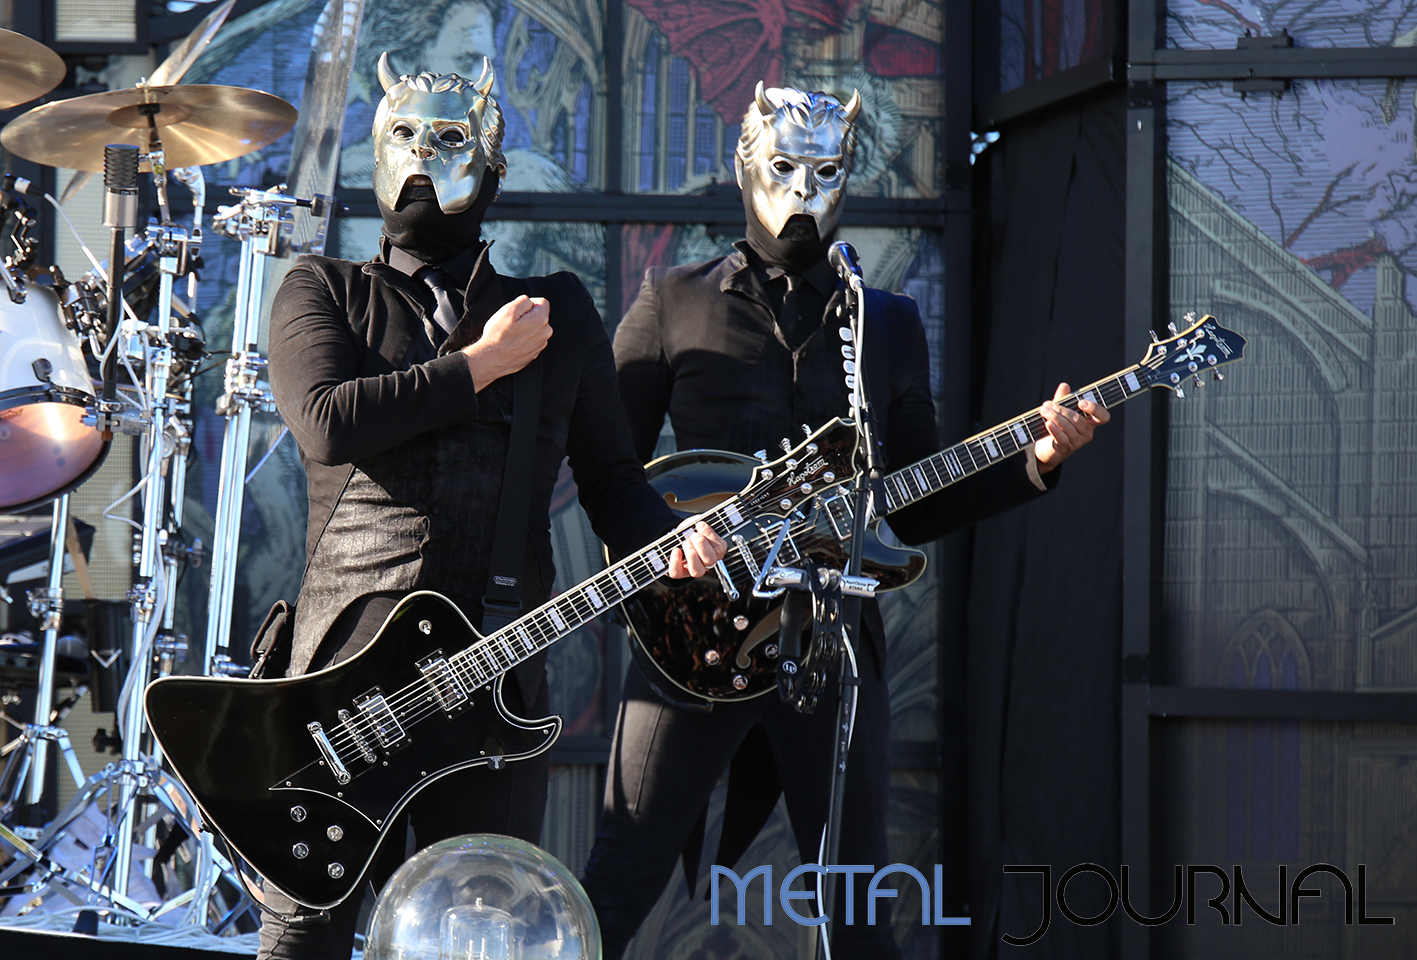 ghost metal journal 2019 pic 11